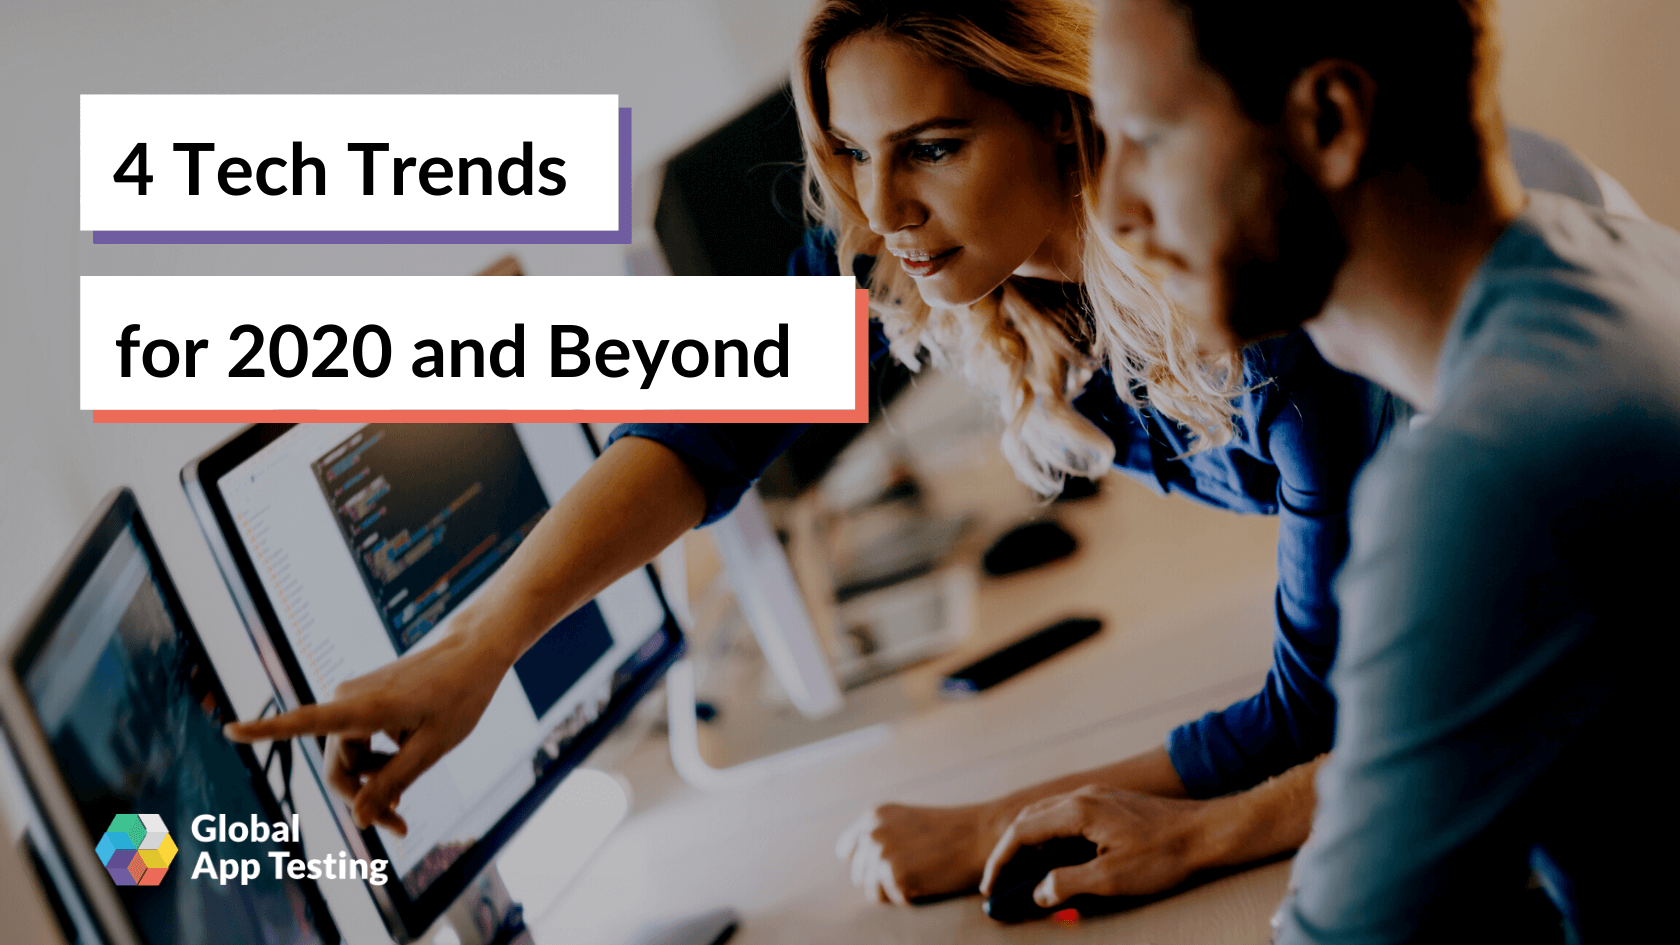 4 Tech Trends for 2020 and Beyond